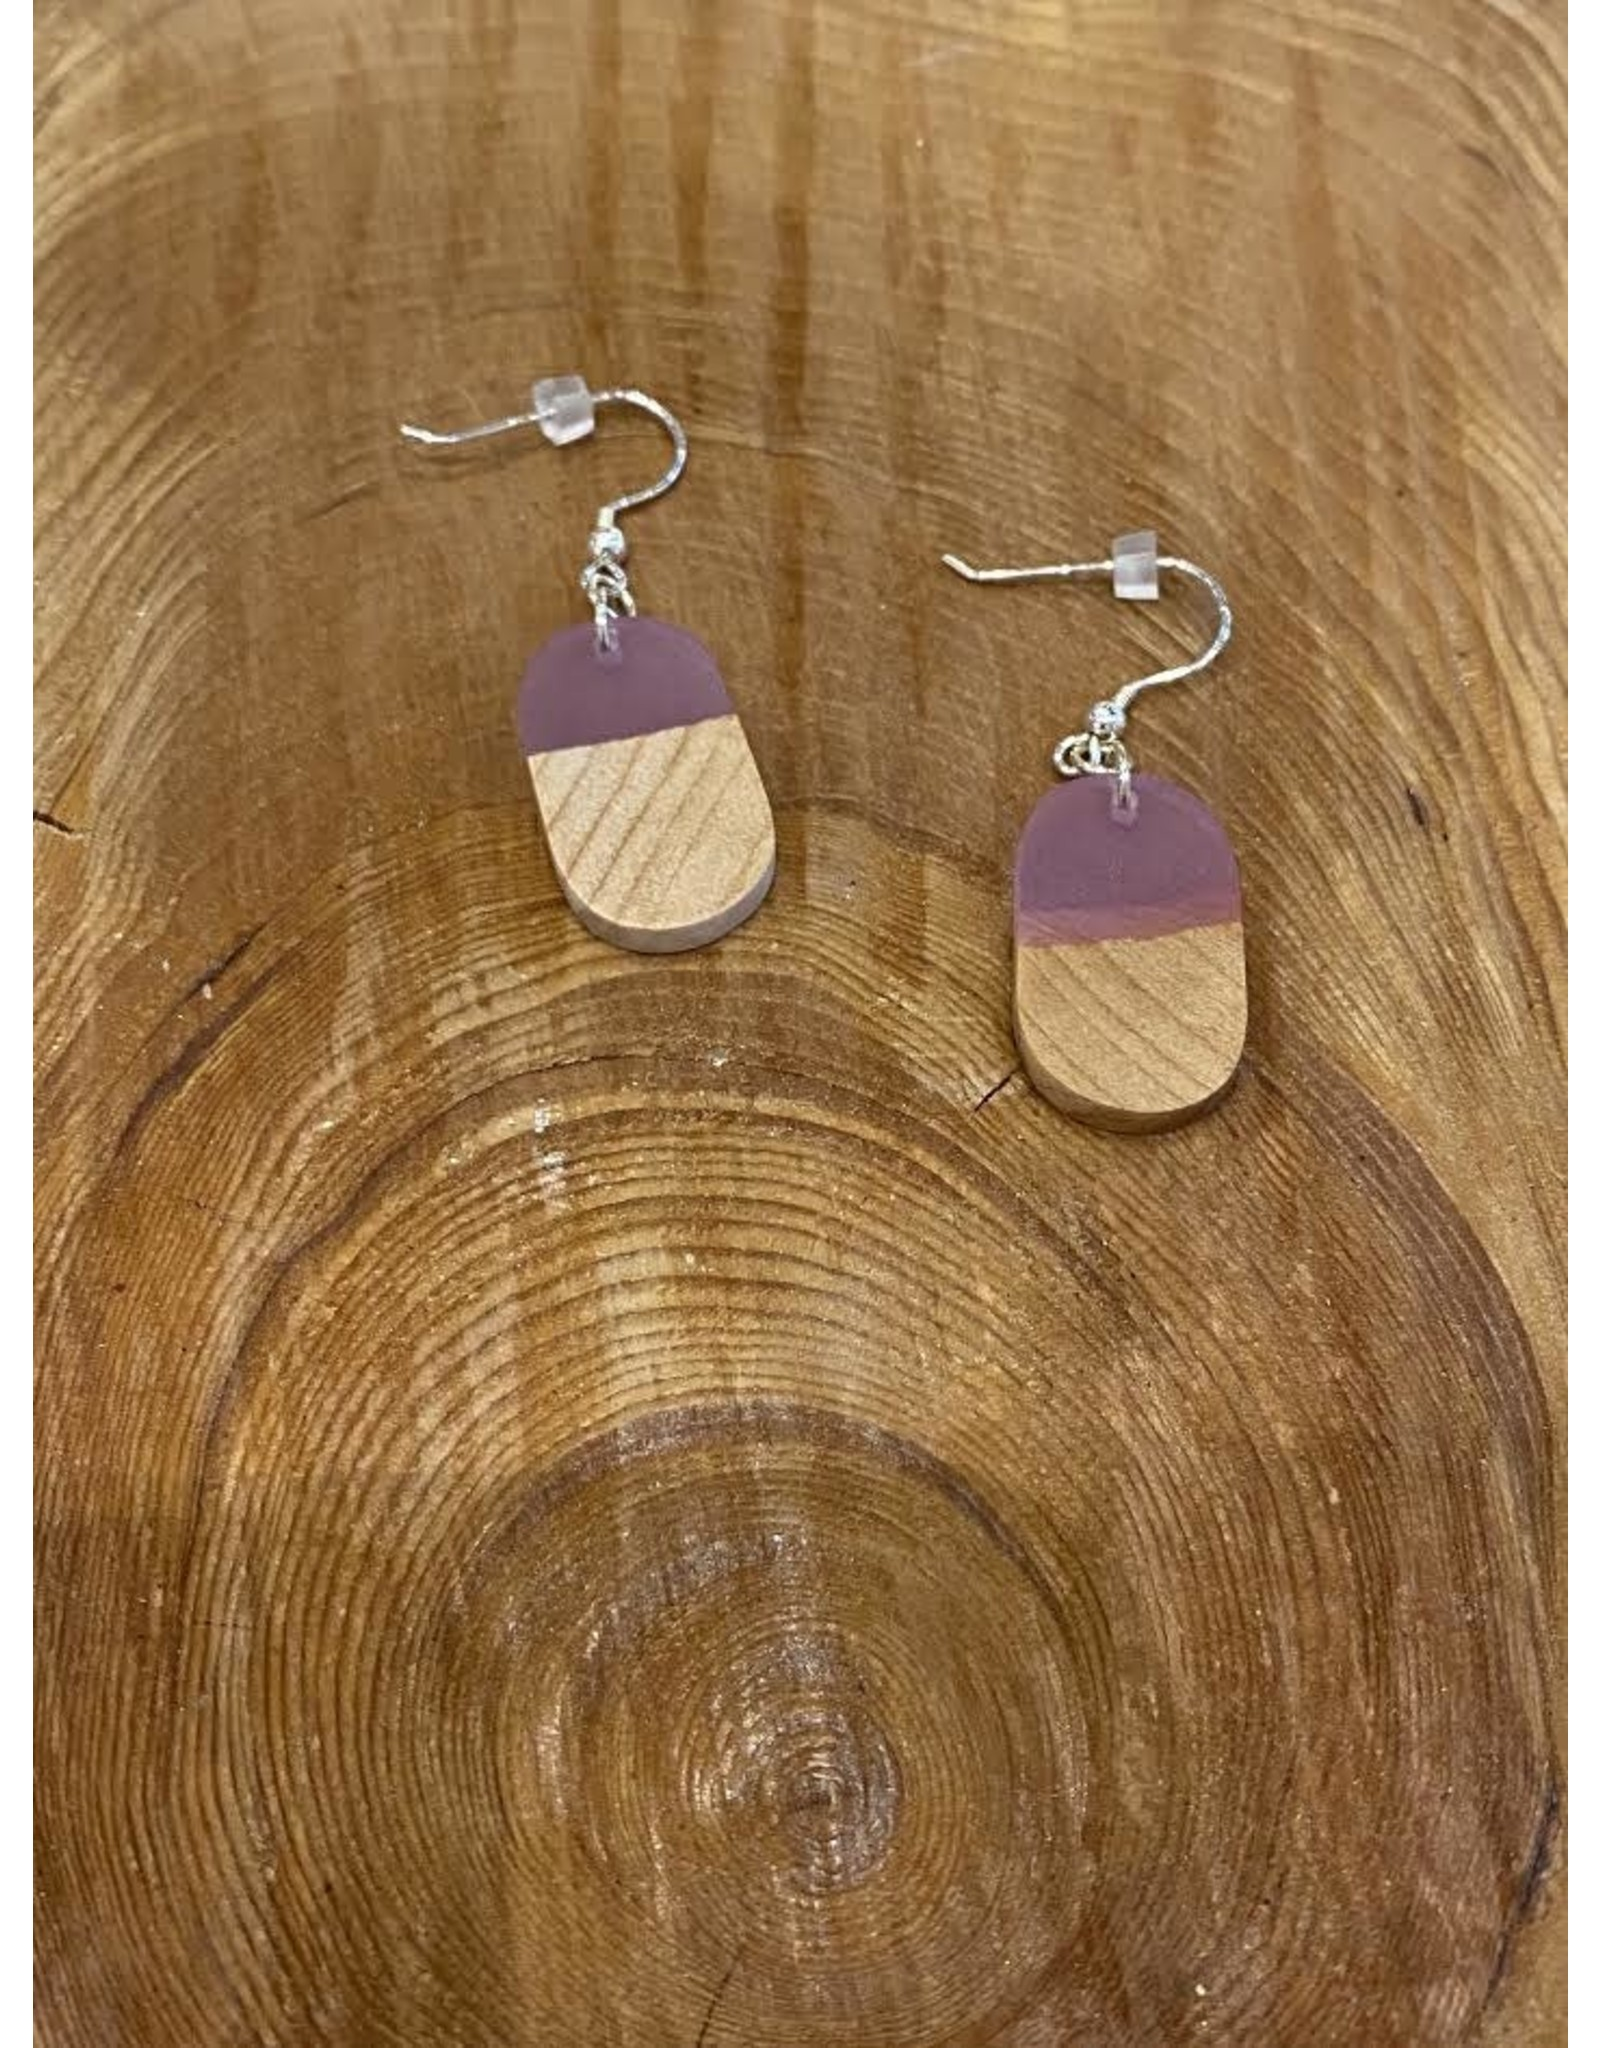 Timber & Tides Timber & Tides Earrings Pink Oval